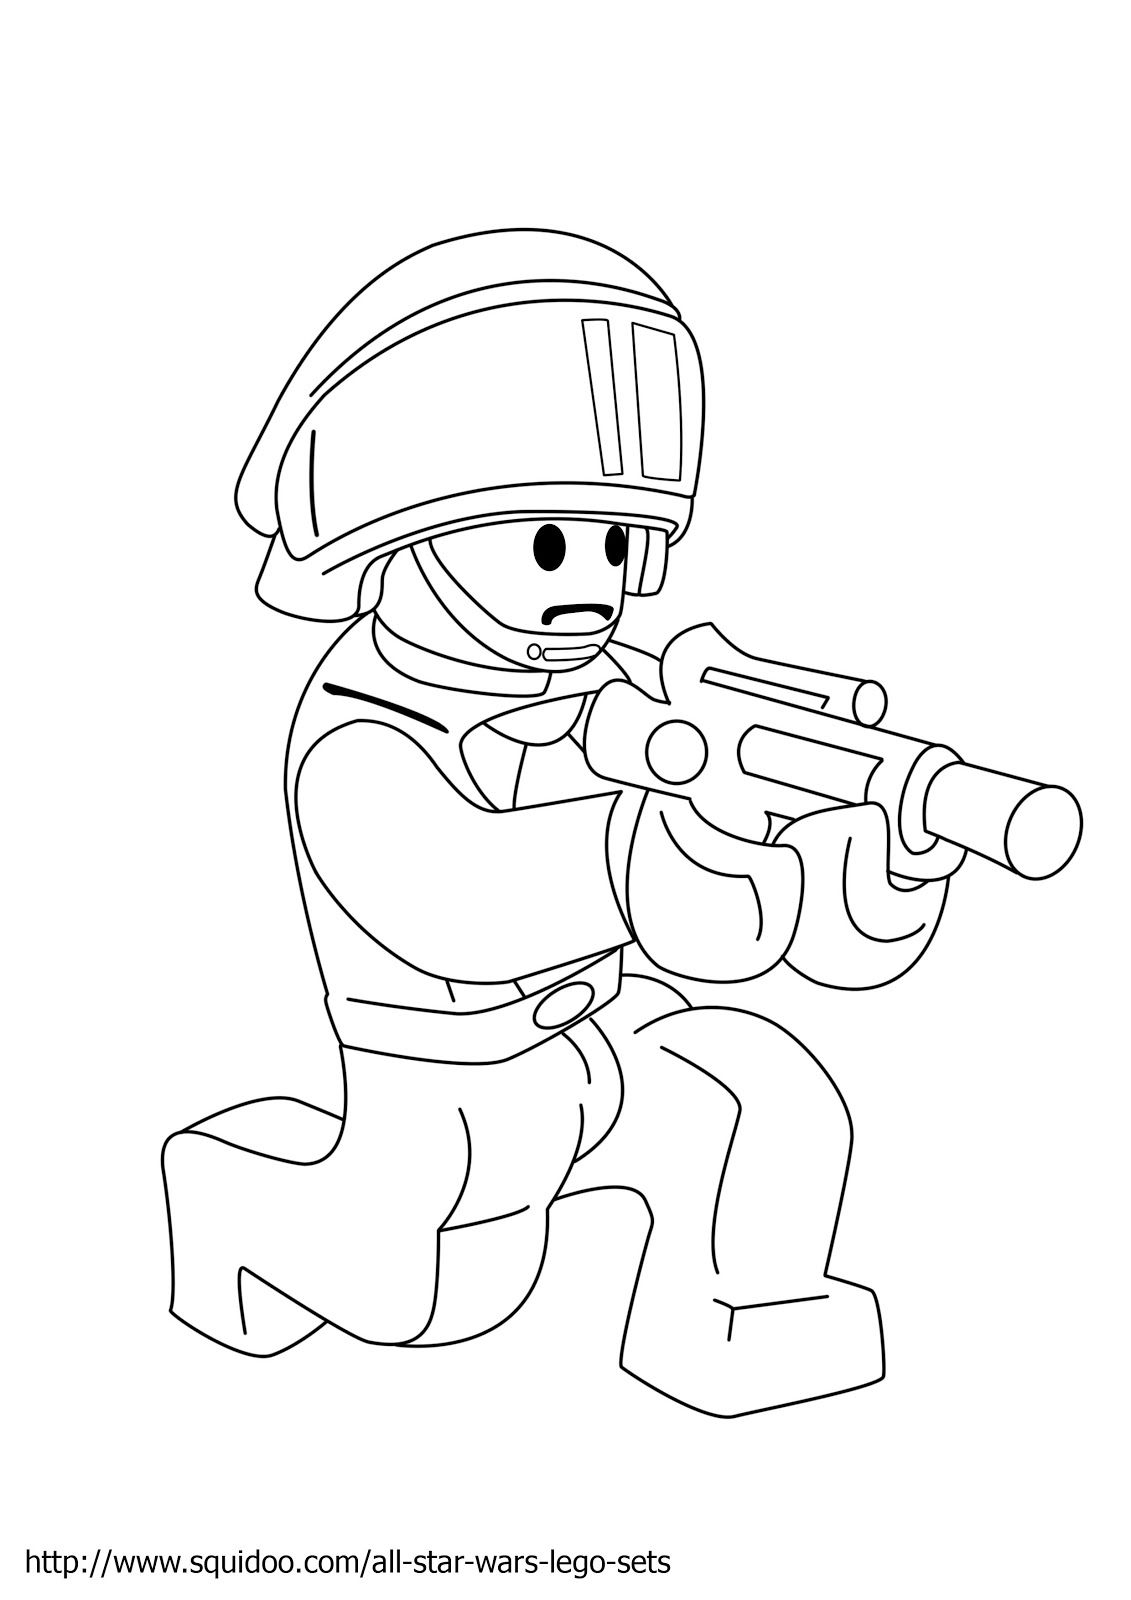 Lego army men coloring pages - Lego 25252bstar 25252bwars 25252bcoloring 25252bpage Jpg 1 131 1 600 Pixels